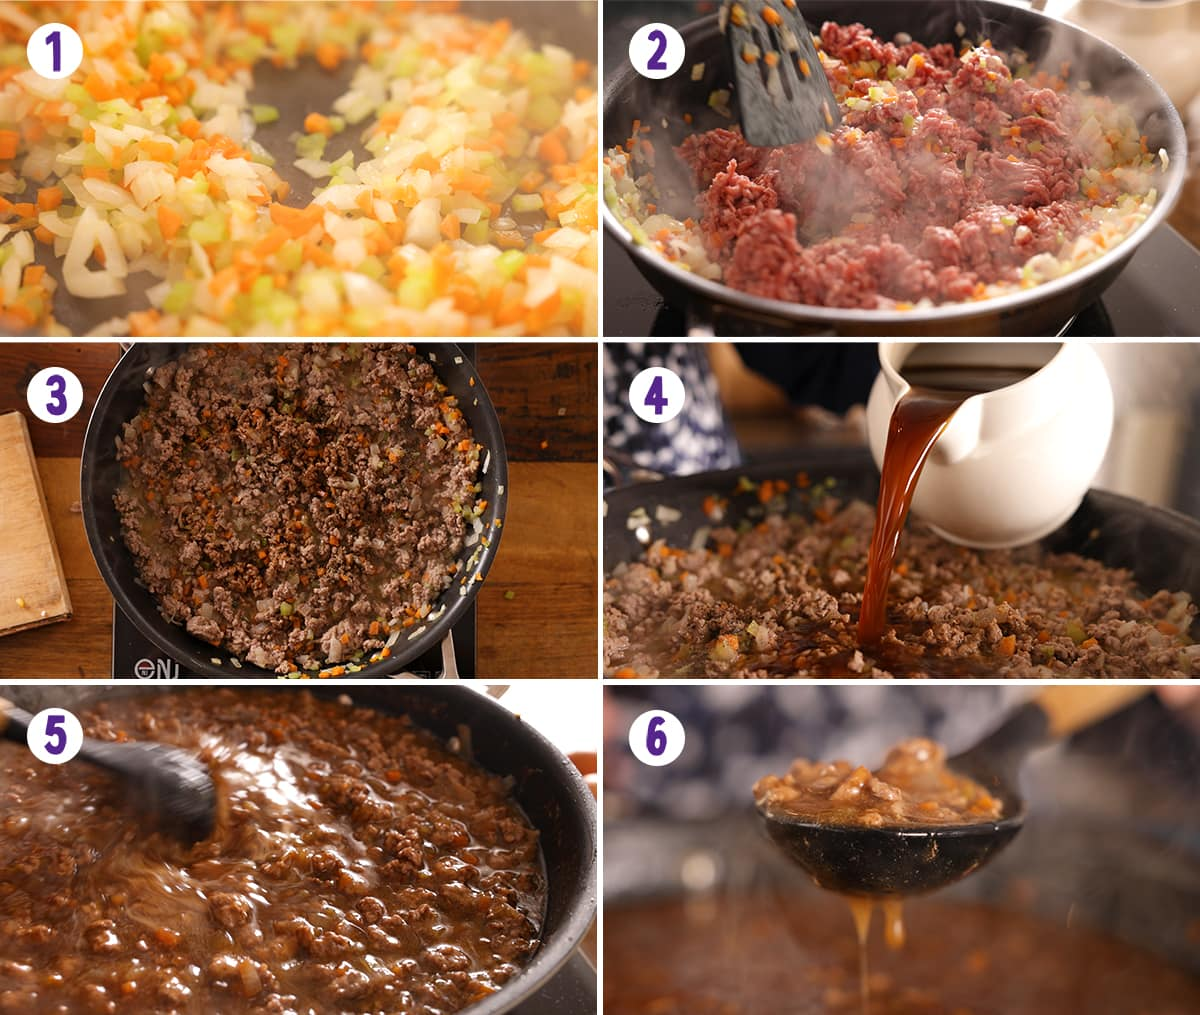 6 image collage showing initial steps for making Shepherd's pie